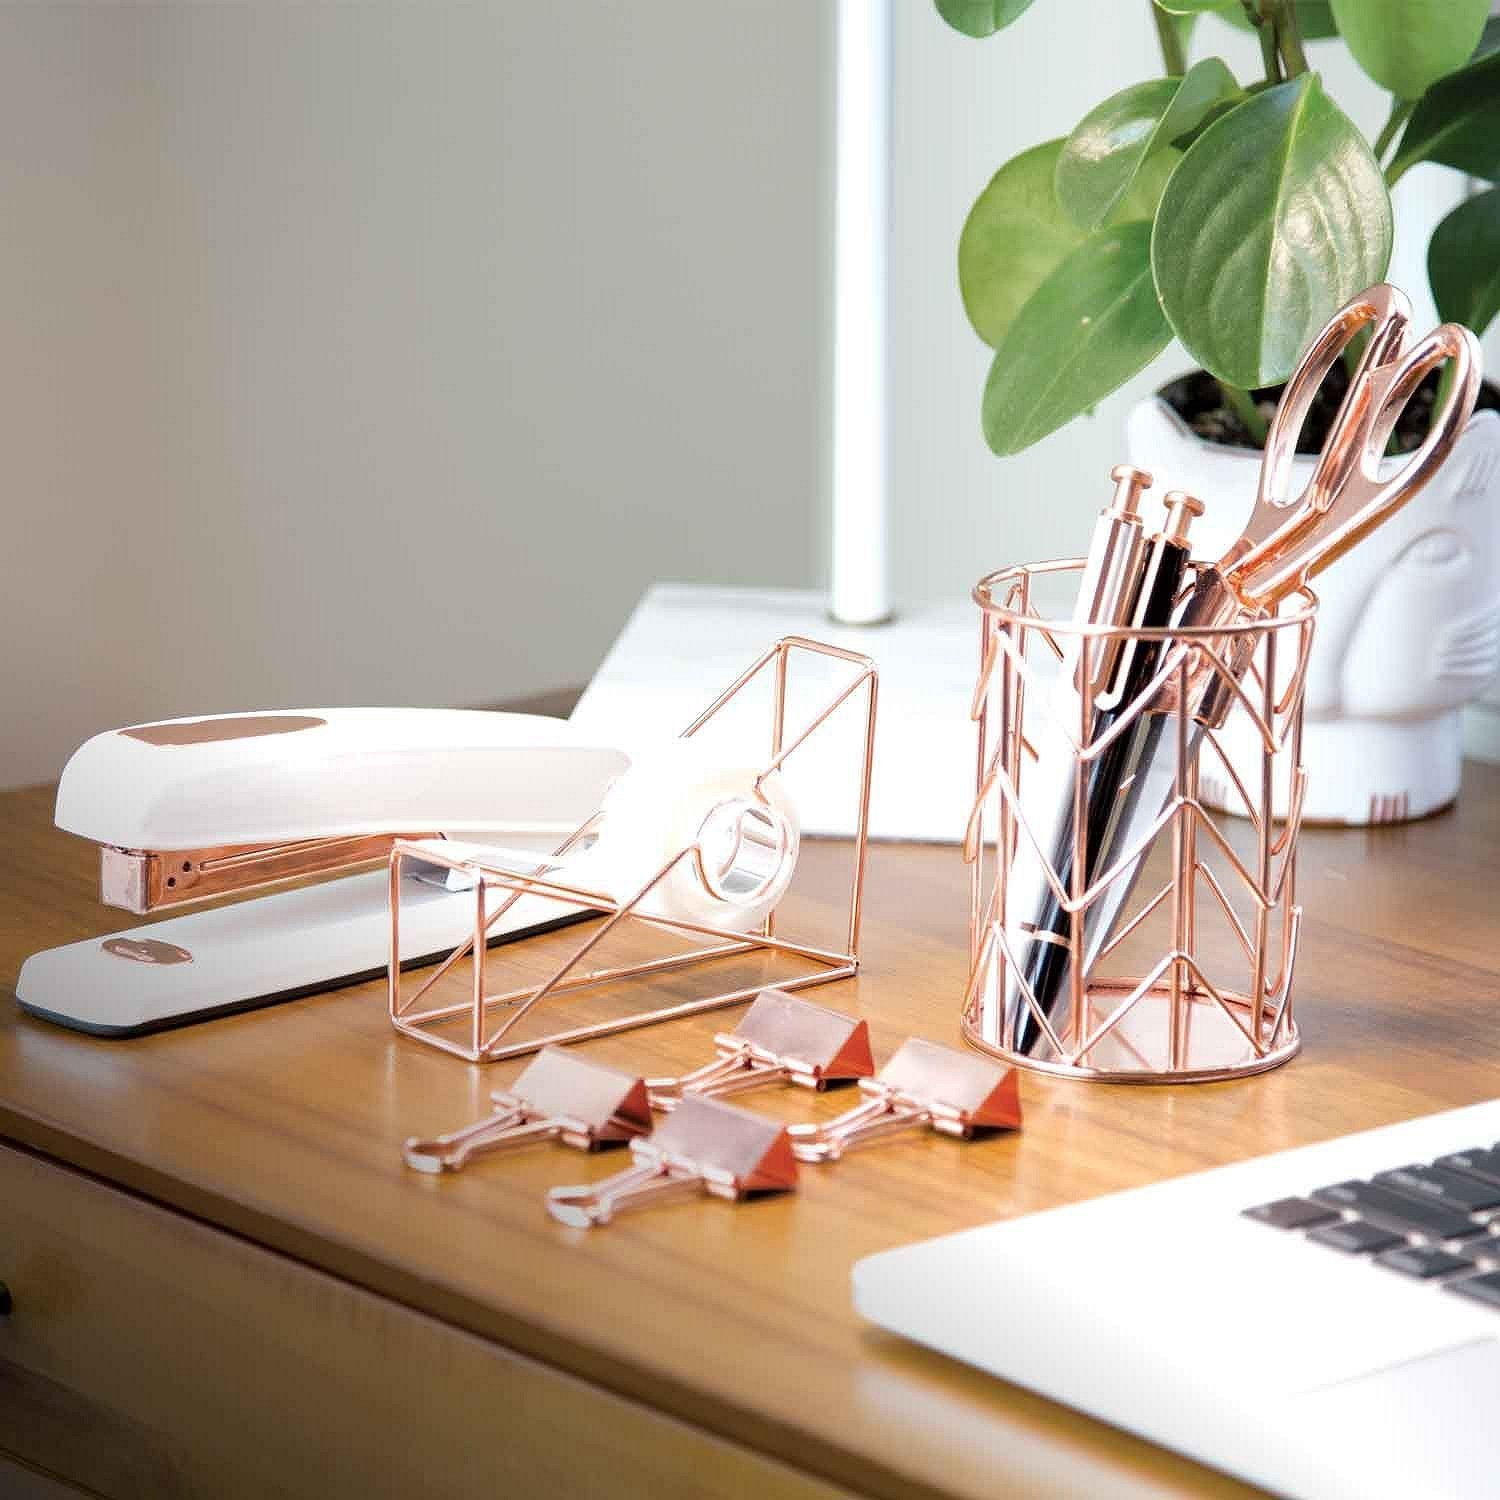 Rose Gold Office Supplies: Scissors, Tape Dispenser